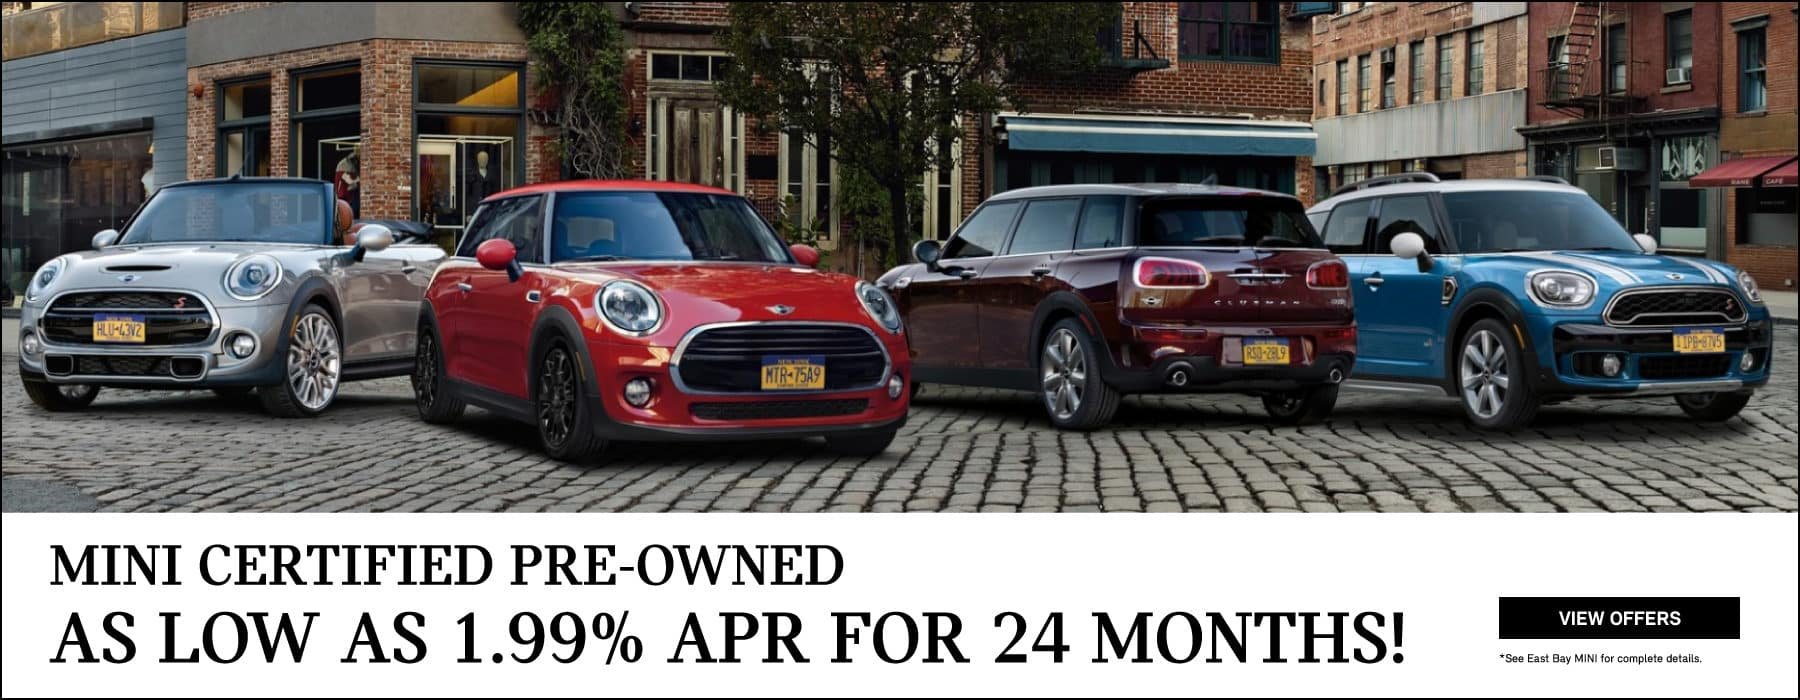 MINI Certified Pre-onwed as low as 1.99% APR for 24 months! View offers button. See East Bay MINI for complete details. Family of MINI's image.